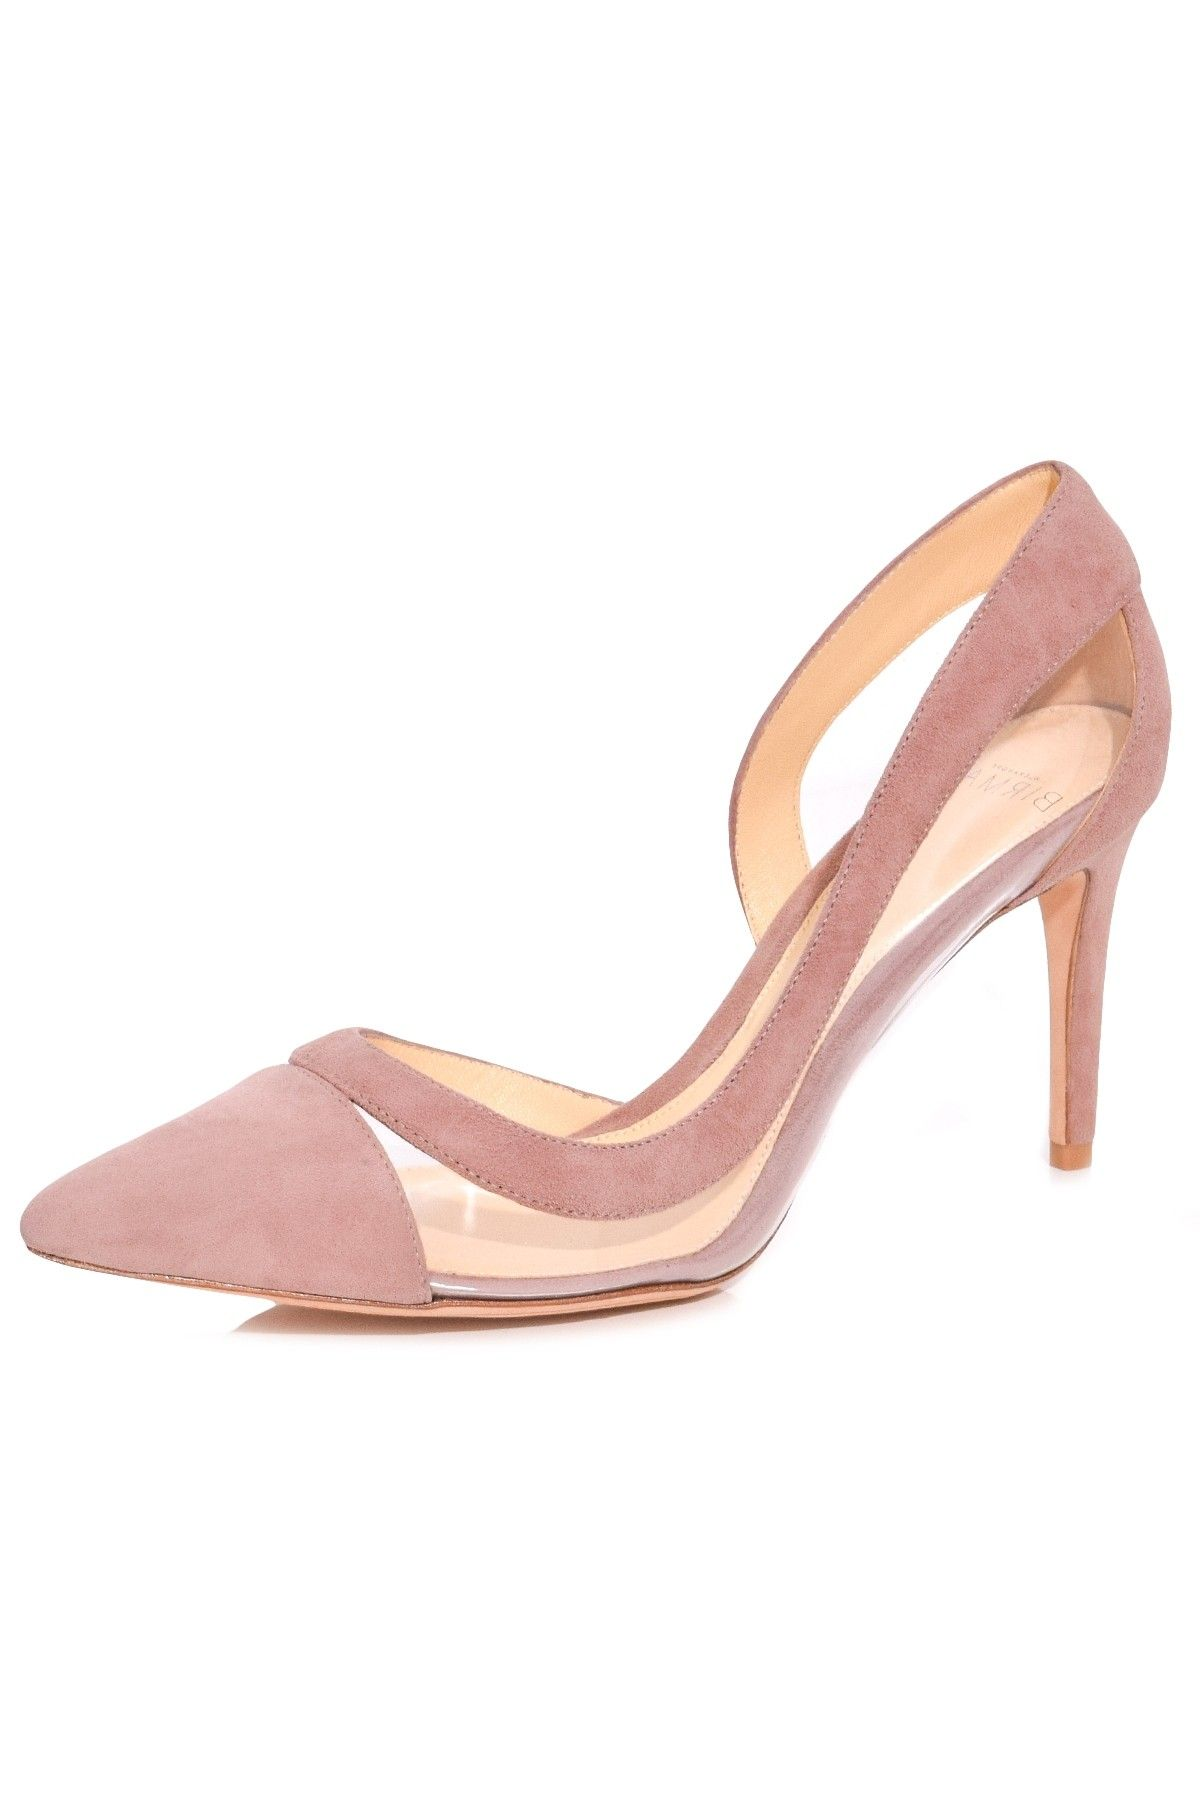 Pump Style Wavee In ShoesPumps Dust BlushtransparentMy 8wnm0N